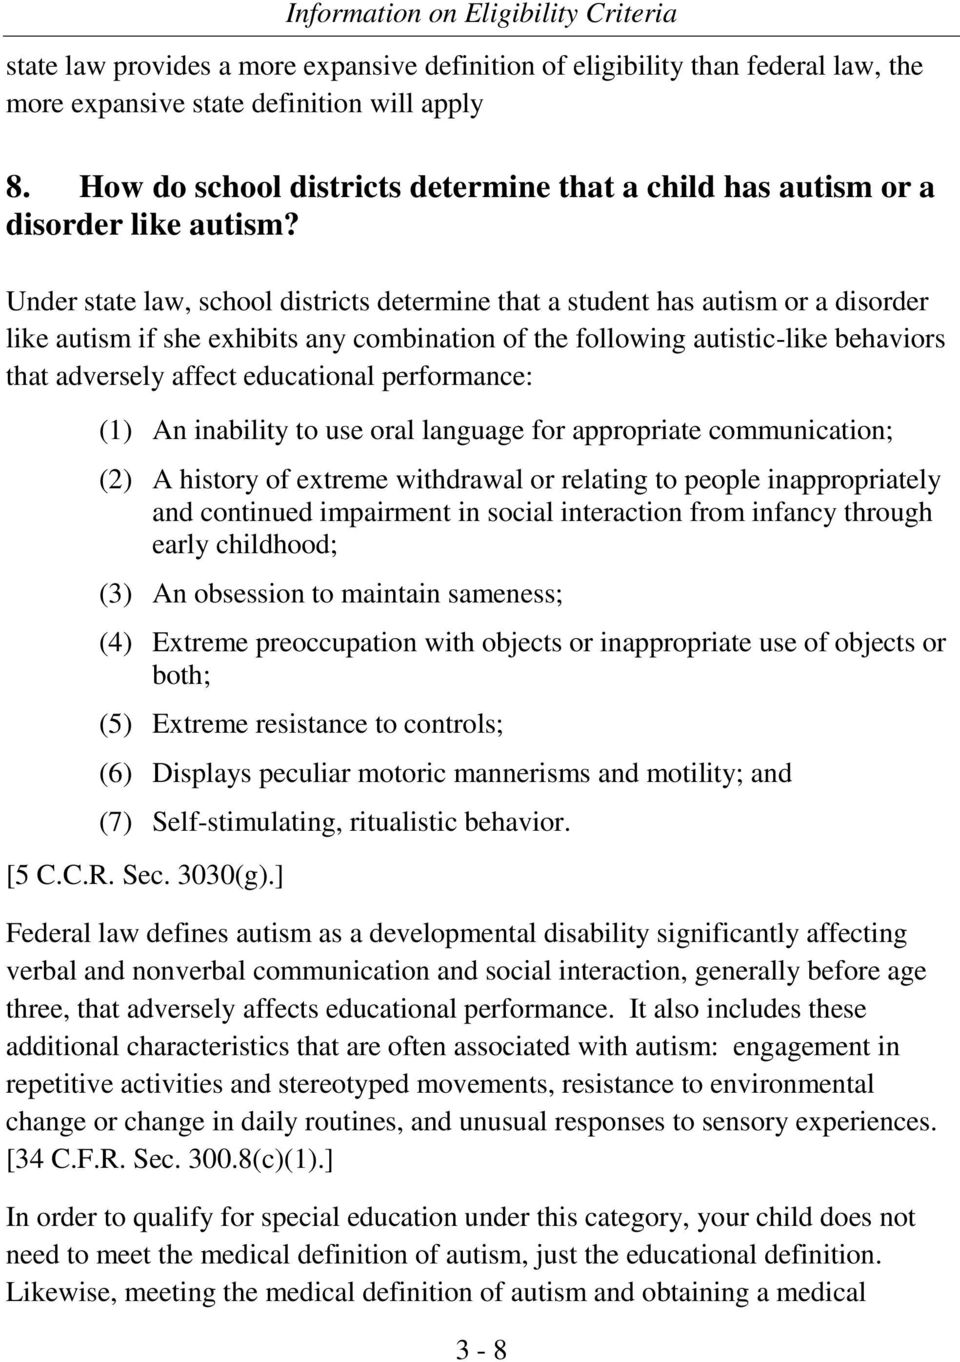 Under state law, school districts determine that a student has autism or a disorder like autism if she exhibits any combination of the following autistic-like behaviors that adversely affect